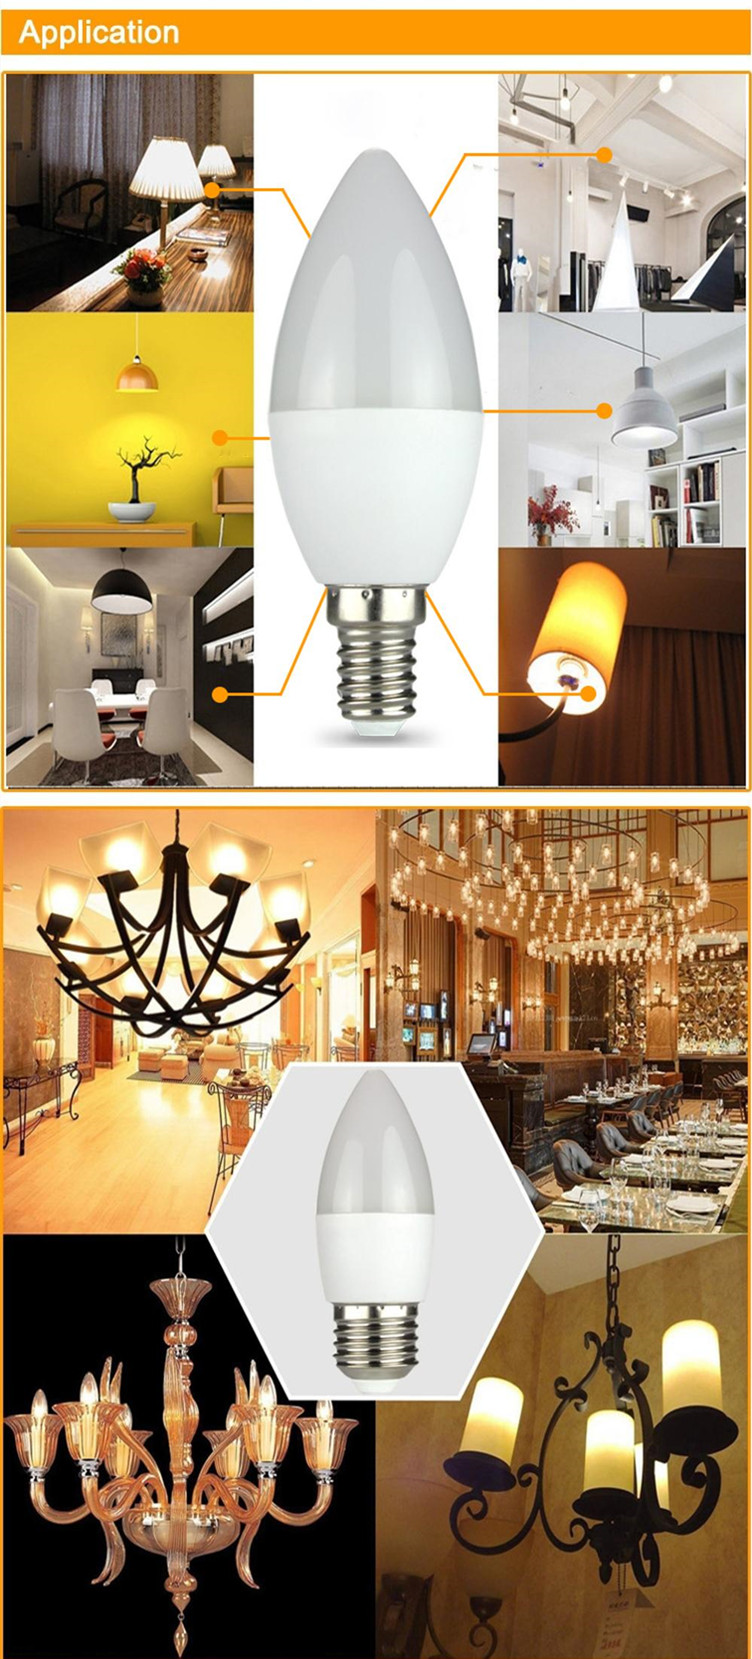 LED CANDLE BULB E14 E27 3W 4W 5W 6W 7W 8W Flame LED Bulb Candle Lamp Light , LED-C37